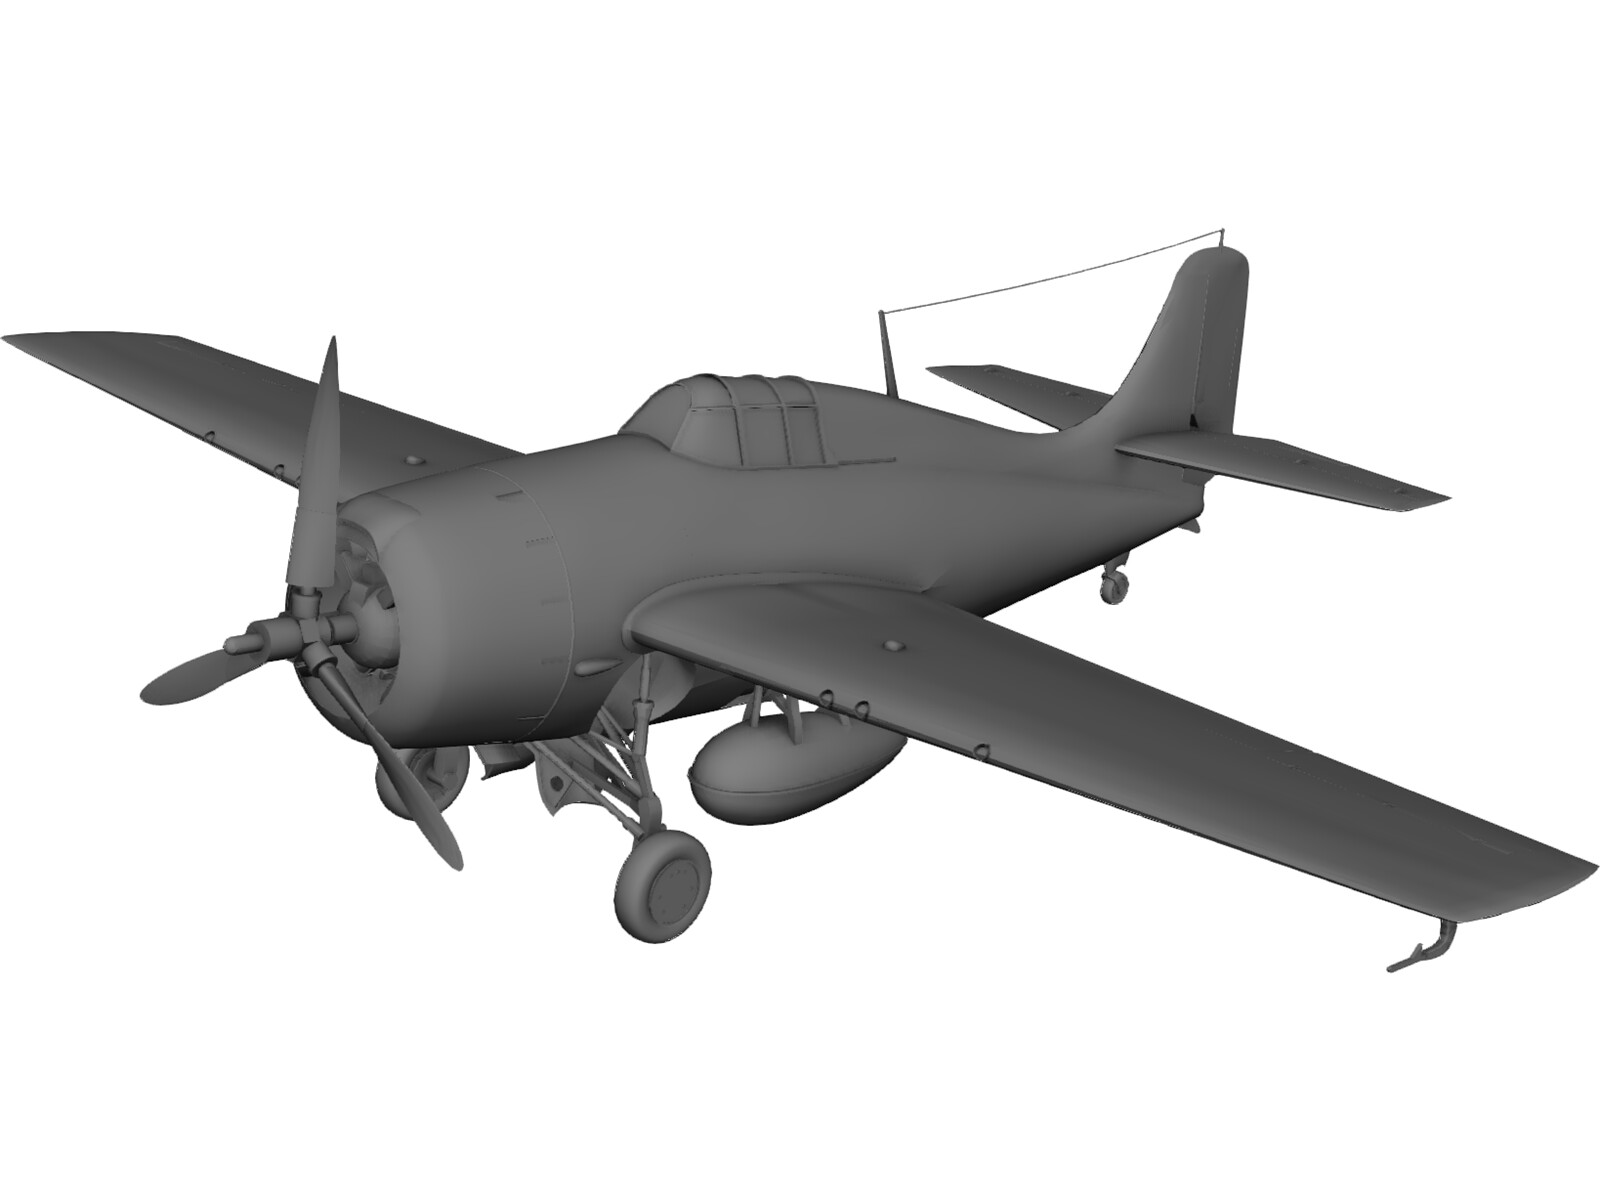 Grumman F4F-4 Wildcat 3D Model